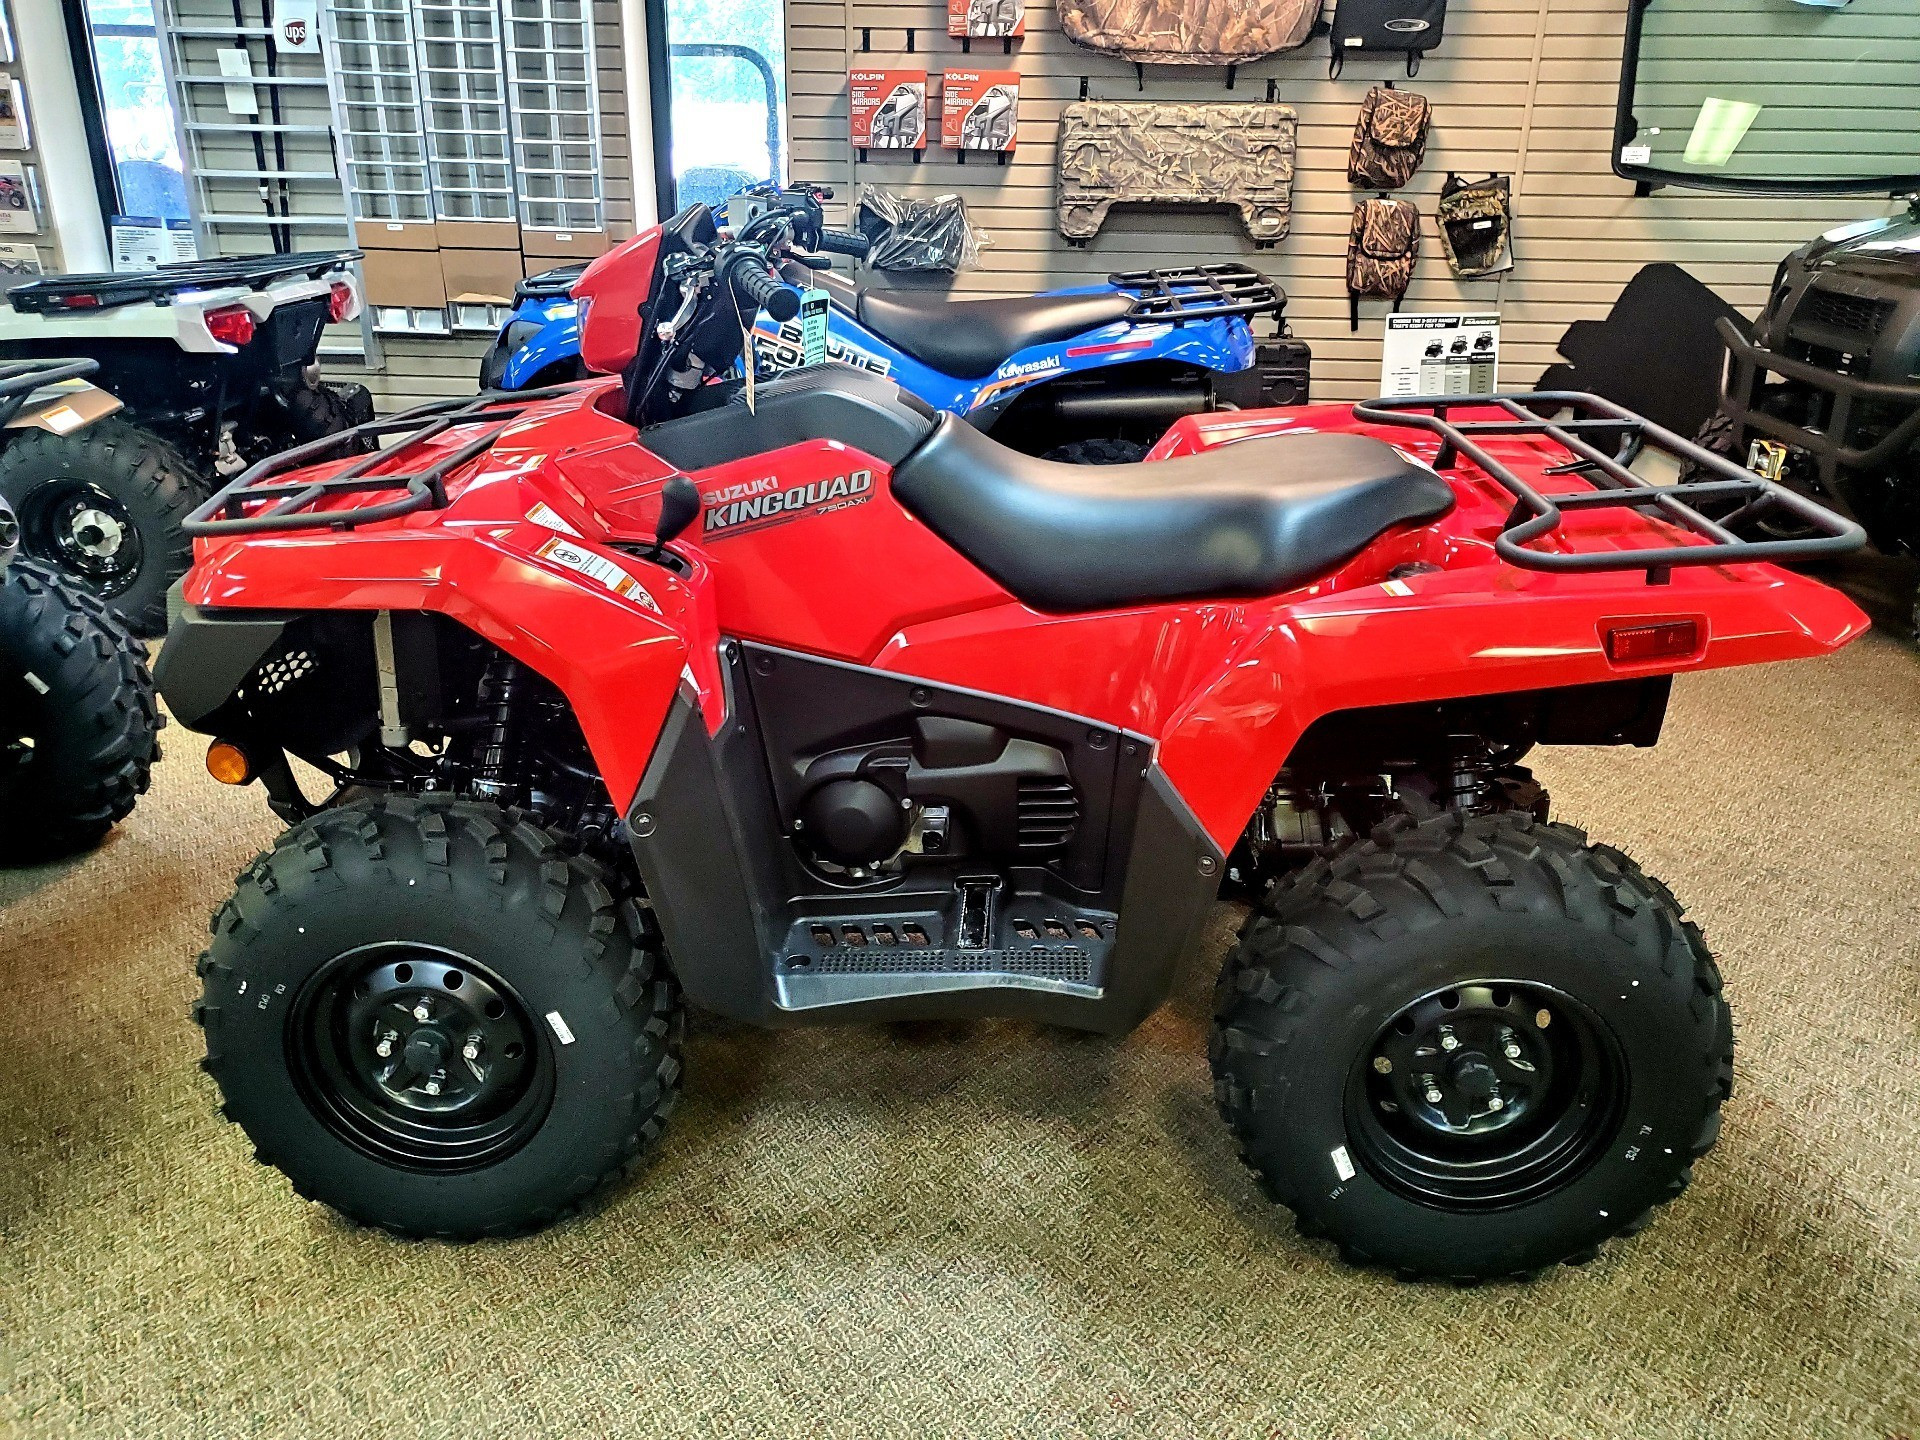 2020 Suzuki KingQuad 750AXi in Jackson, Missouri - Photo 2